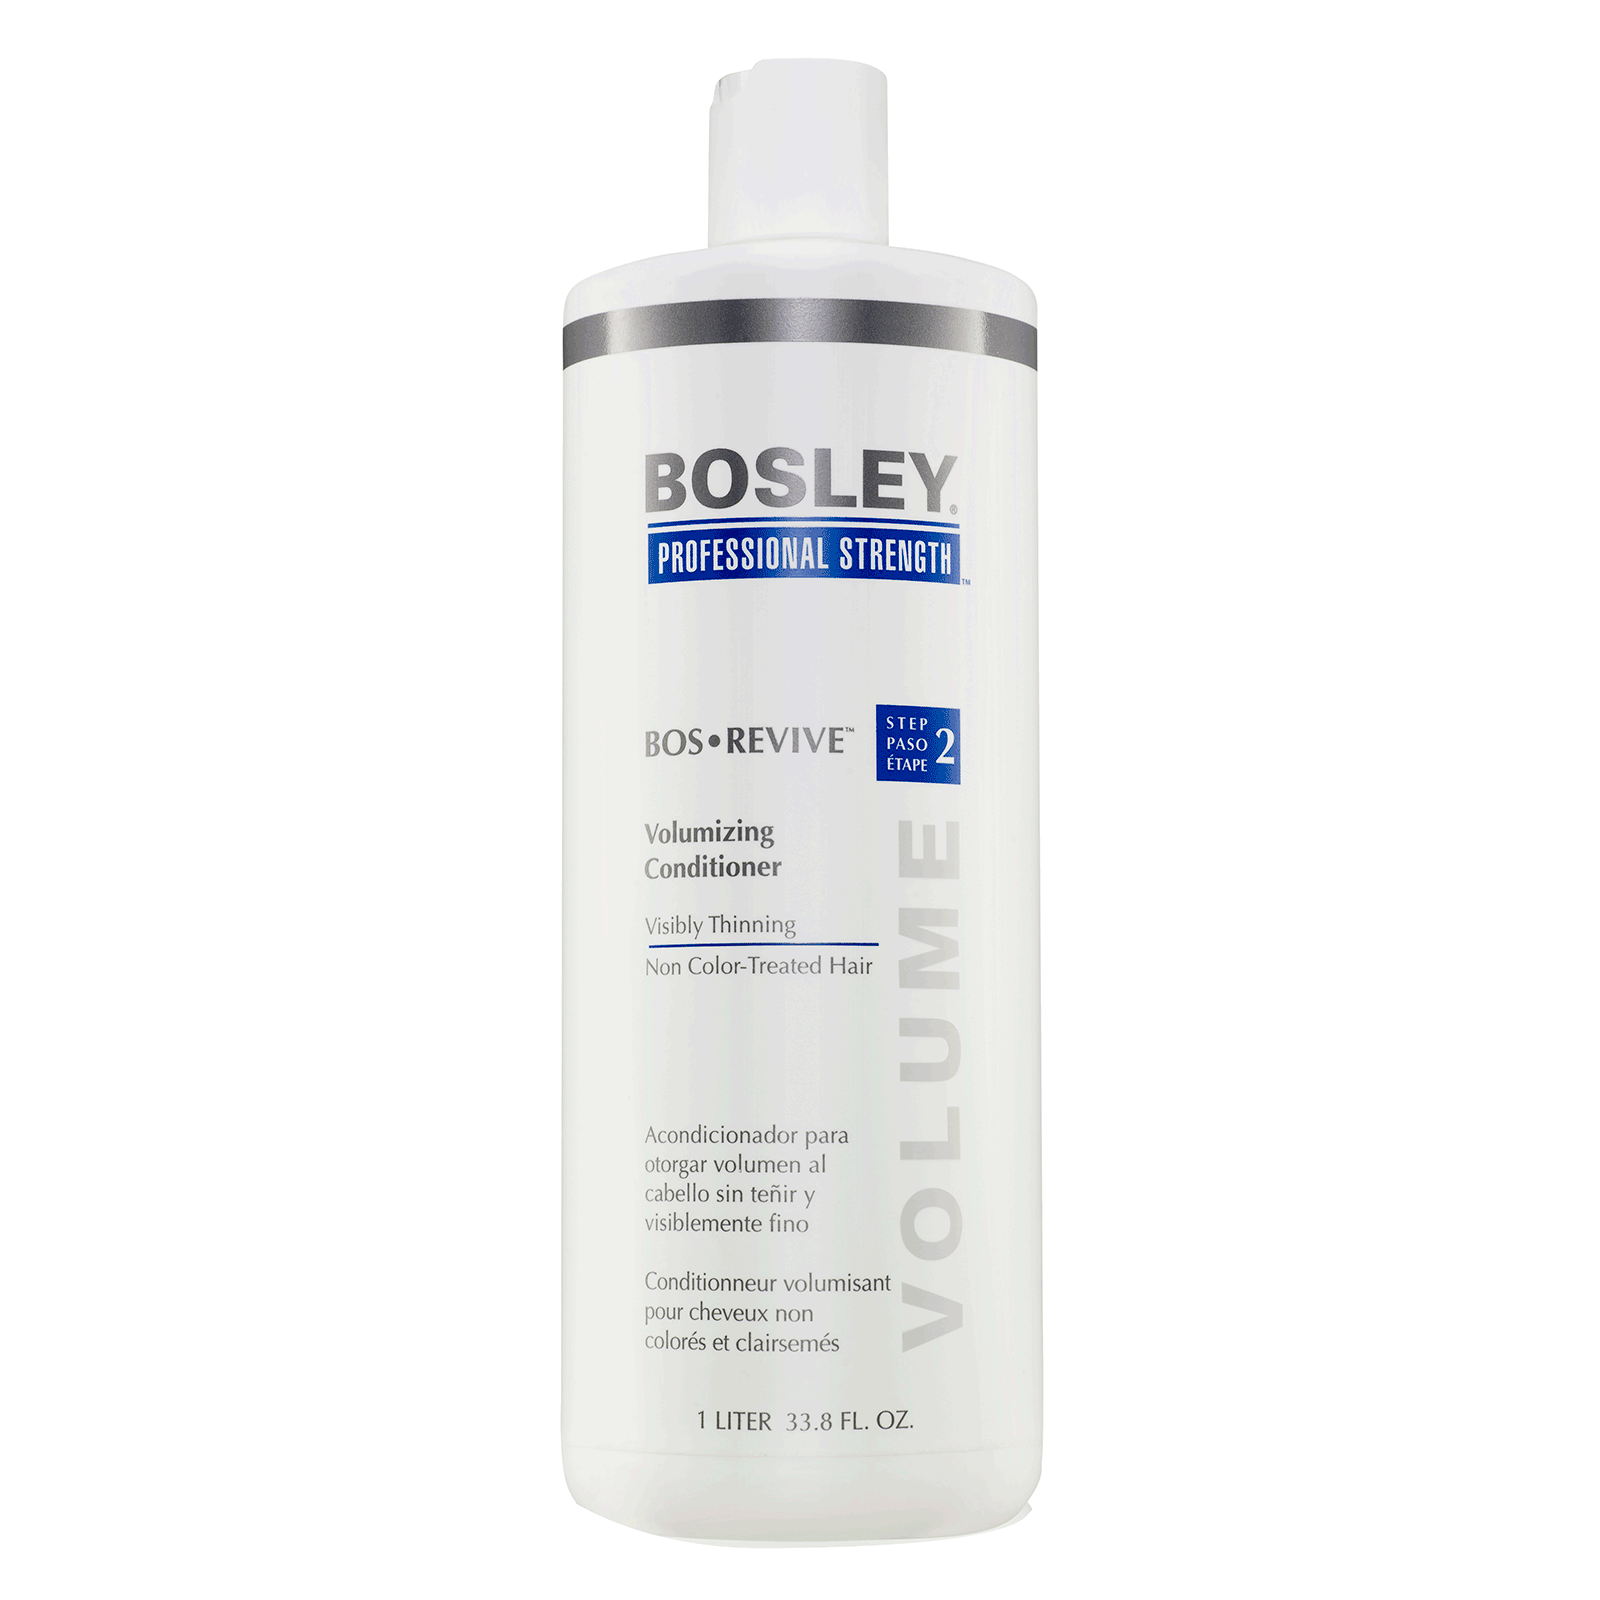 BosRevive Volumizing Conditioner for Non Color-Treated Hair